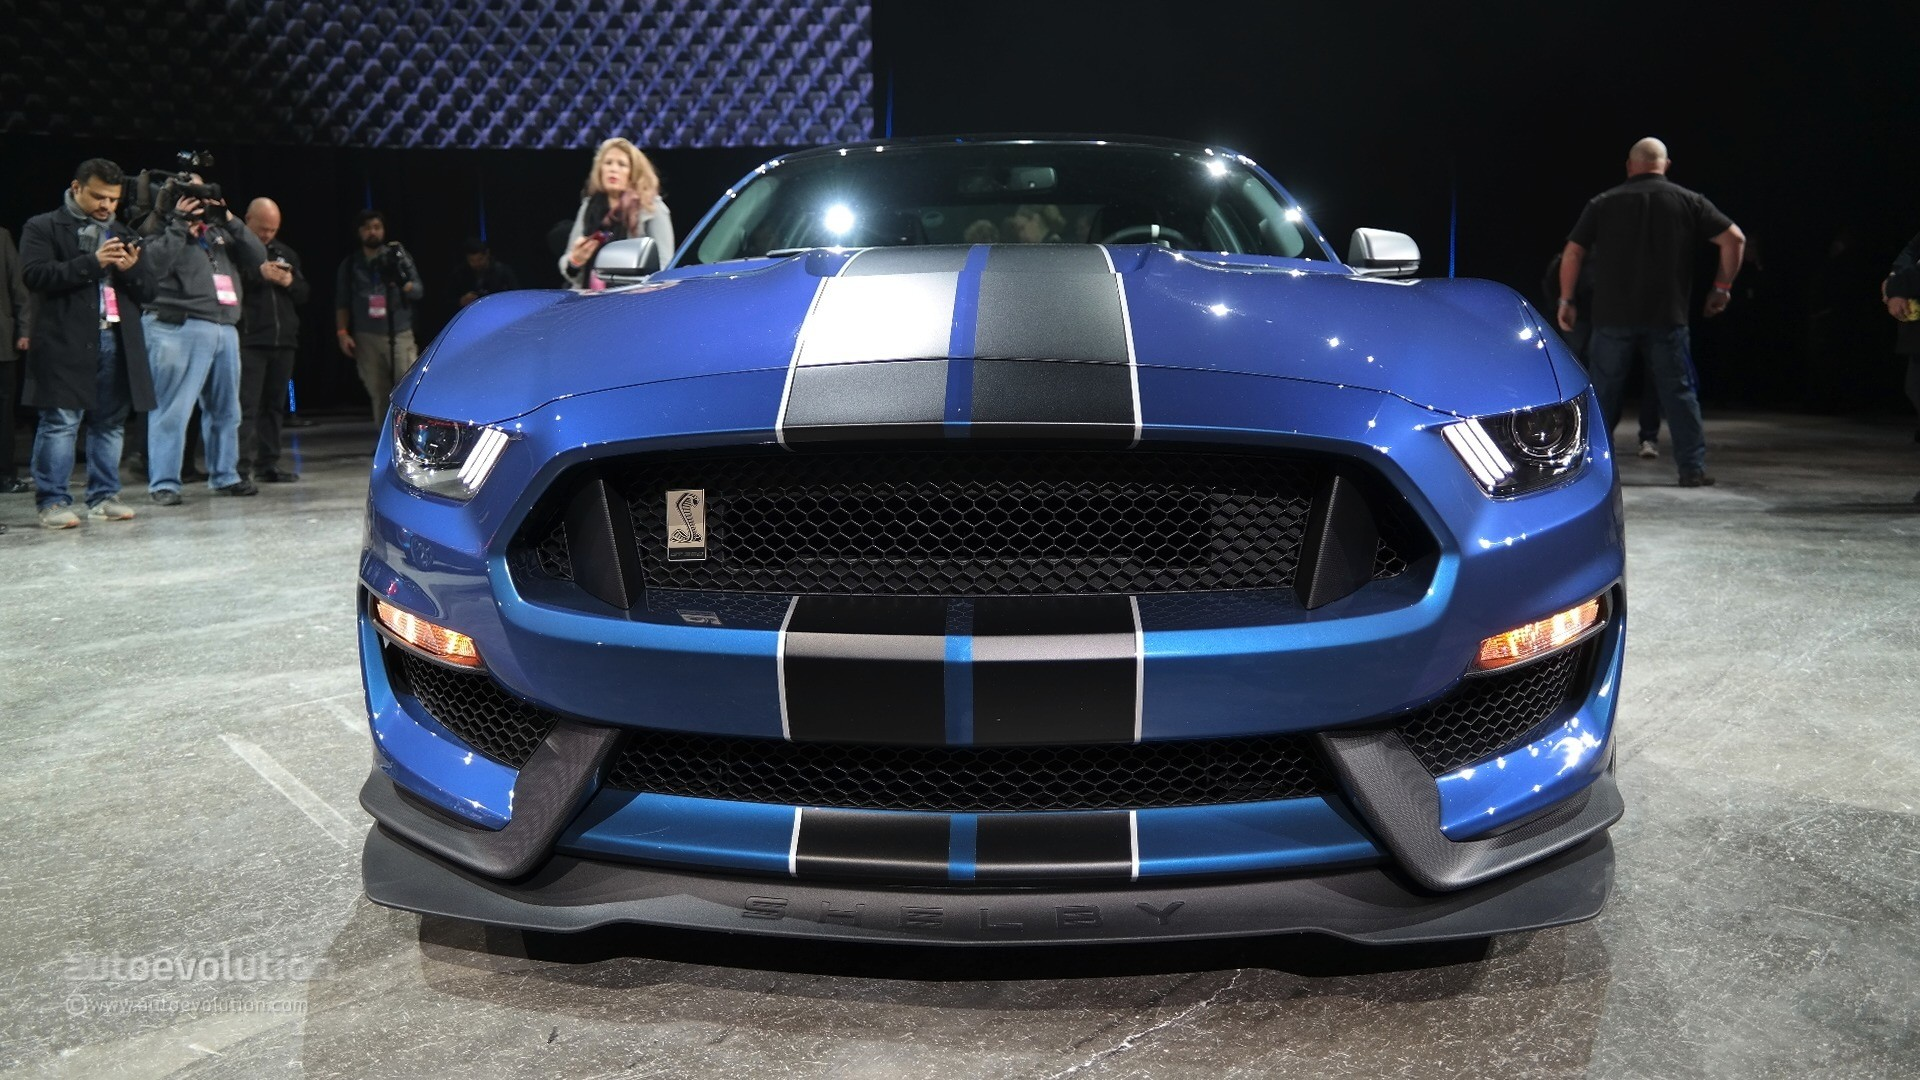 Car Burnout Live Wallpaper New Shelby Gt350r Mustang Unveiled In Detroit With Burnout